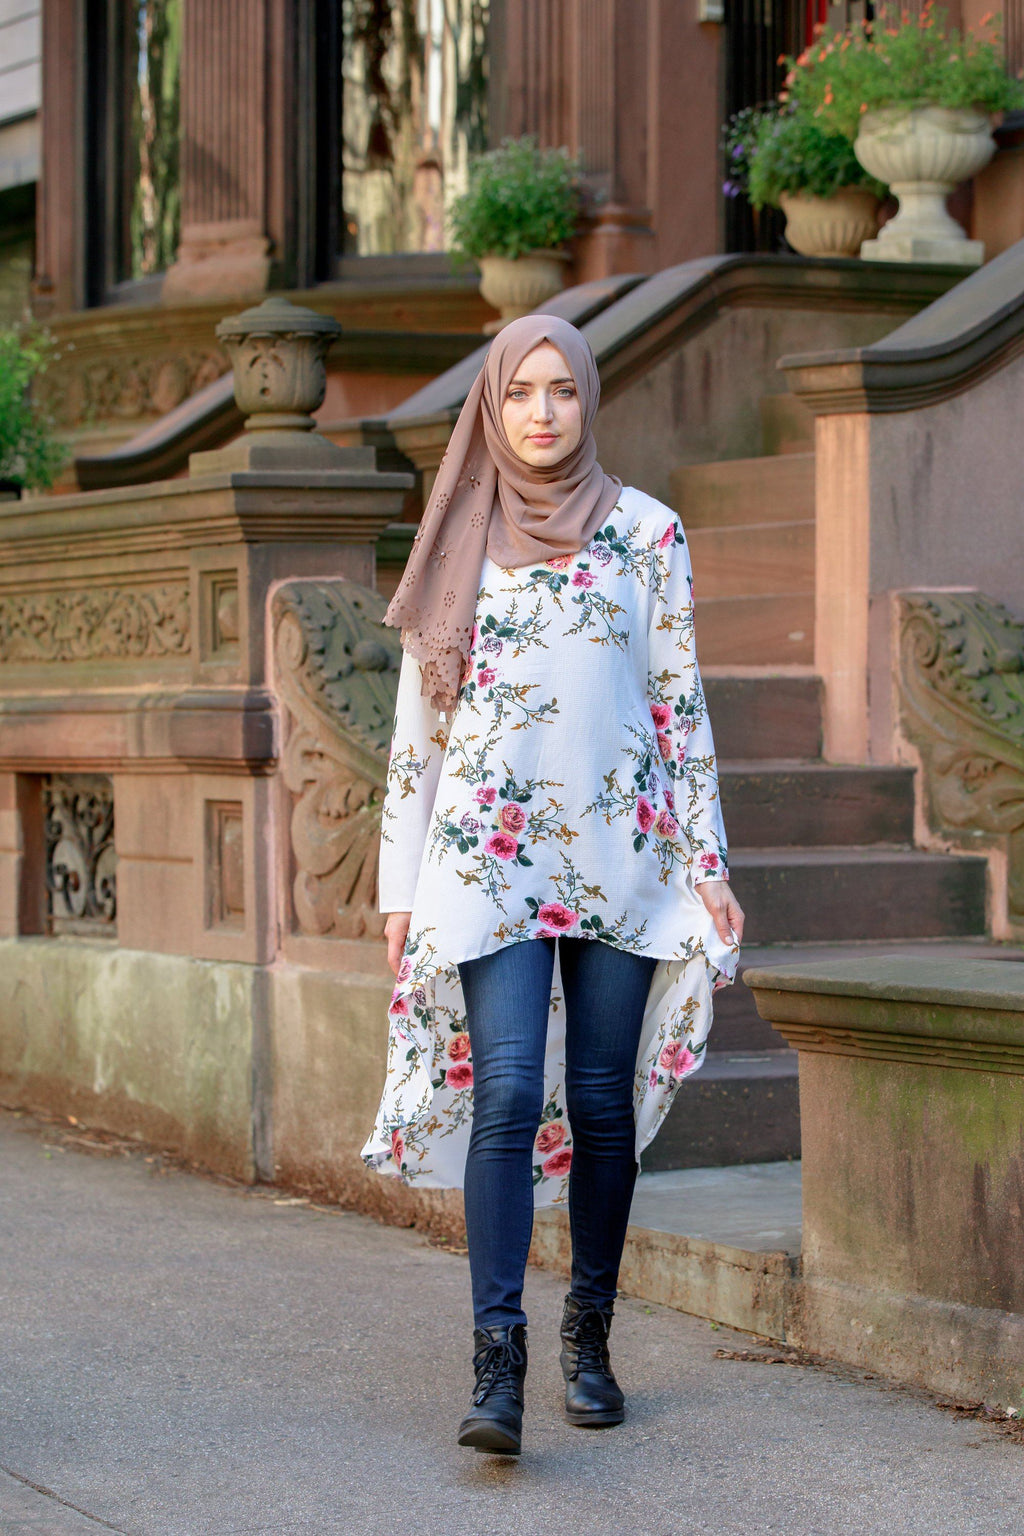 Cream Hi-Lo Floral Tunic Top - CLEARANCE-Tops-Urban Modesty Inc.